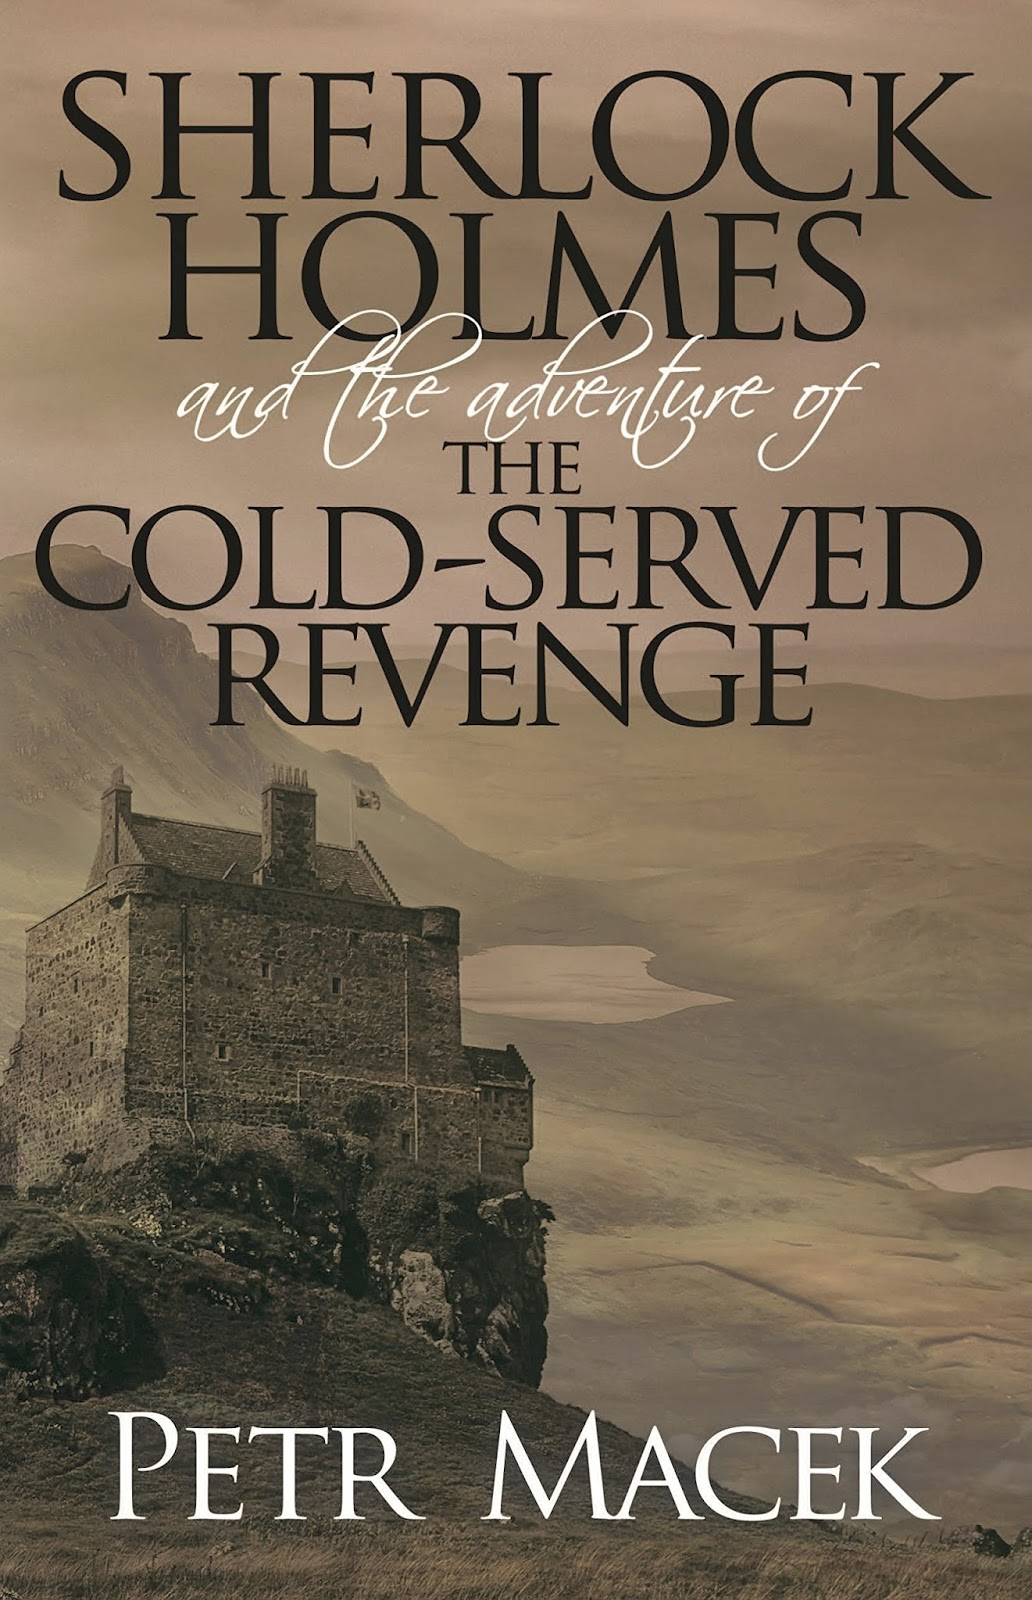 Sherlock Holmes and the Adventure of the Cold-Served Revenge by Petr Macek